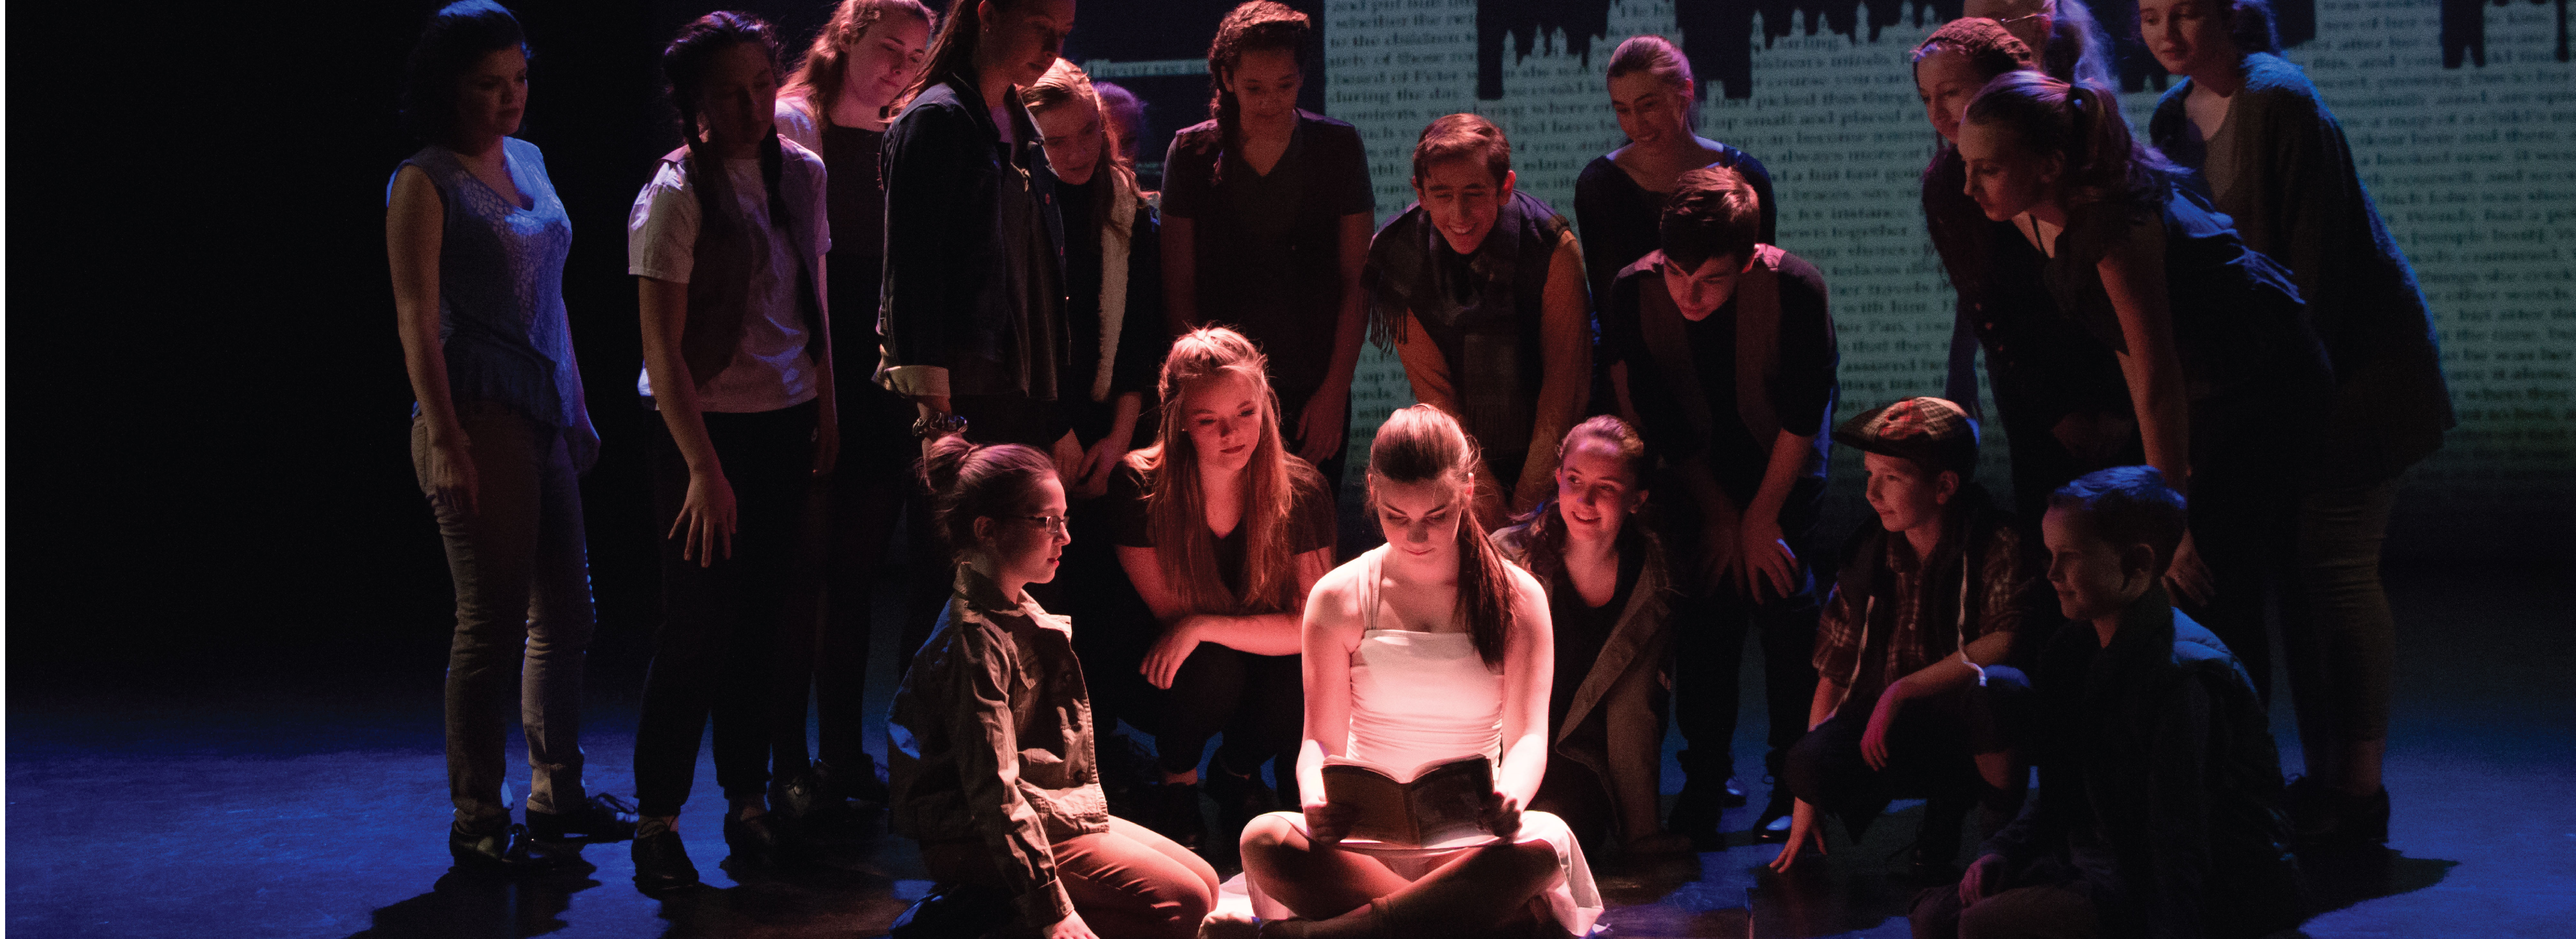 The Riverbend Youth Company